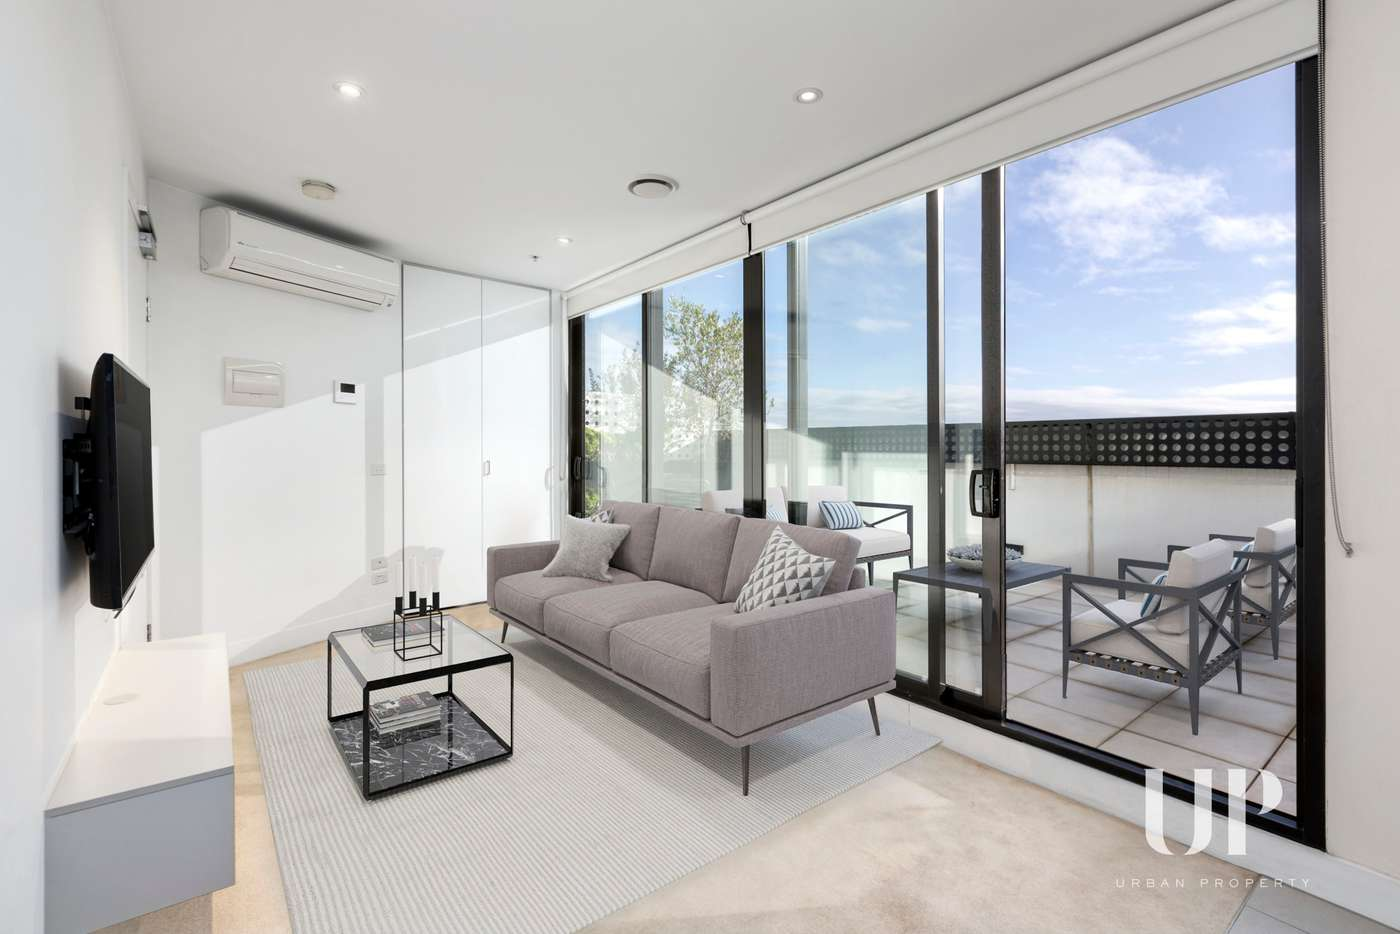 Main view of Homely apartment listing, 1102/263 Franklin Street, Melbourne VIC 3000